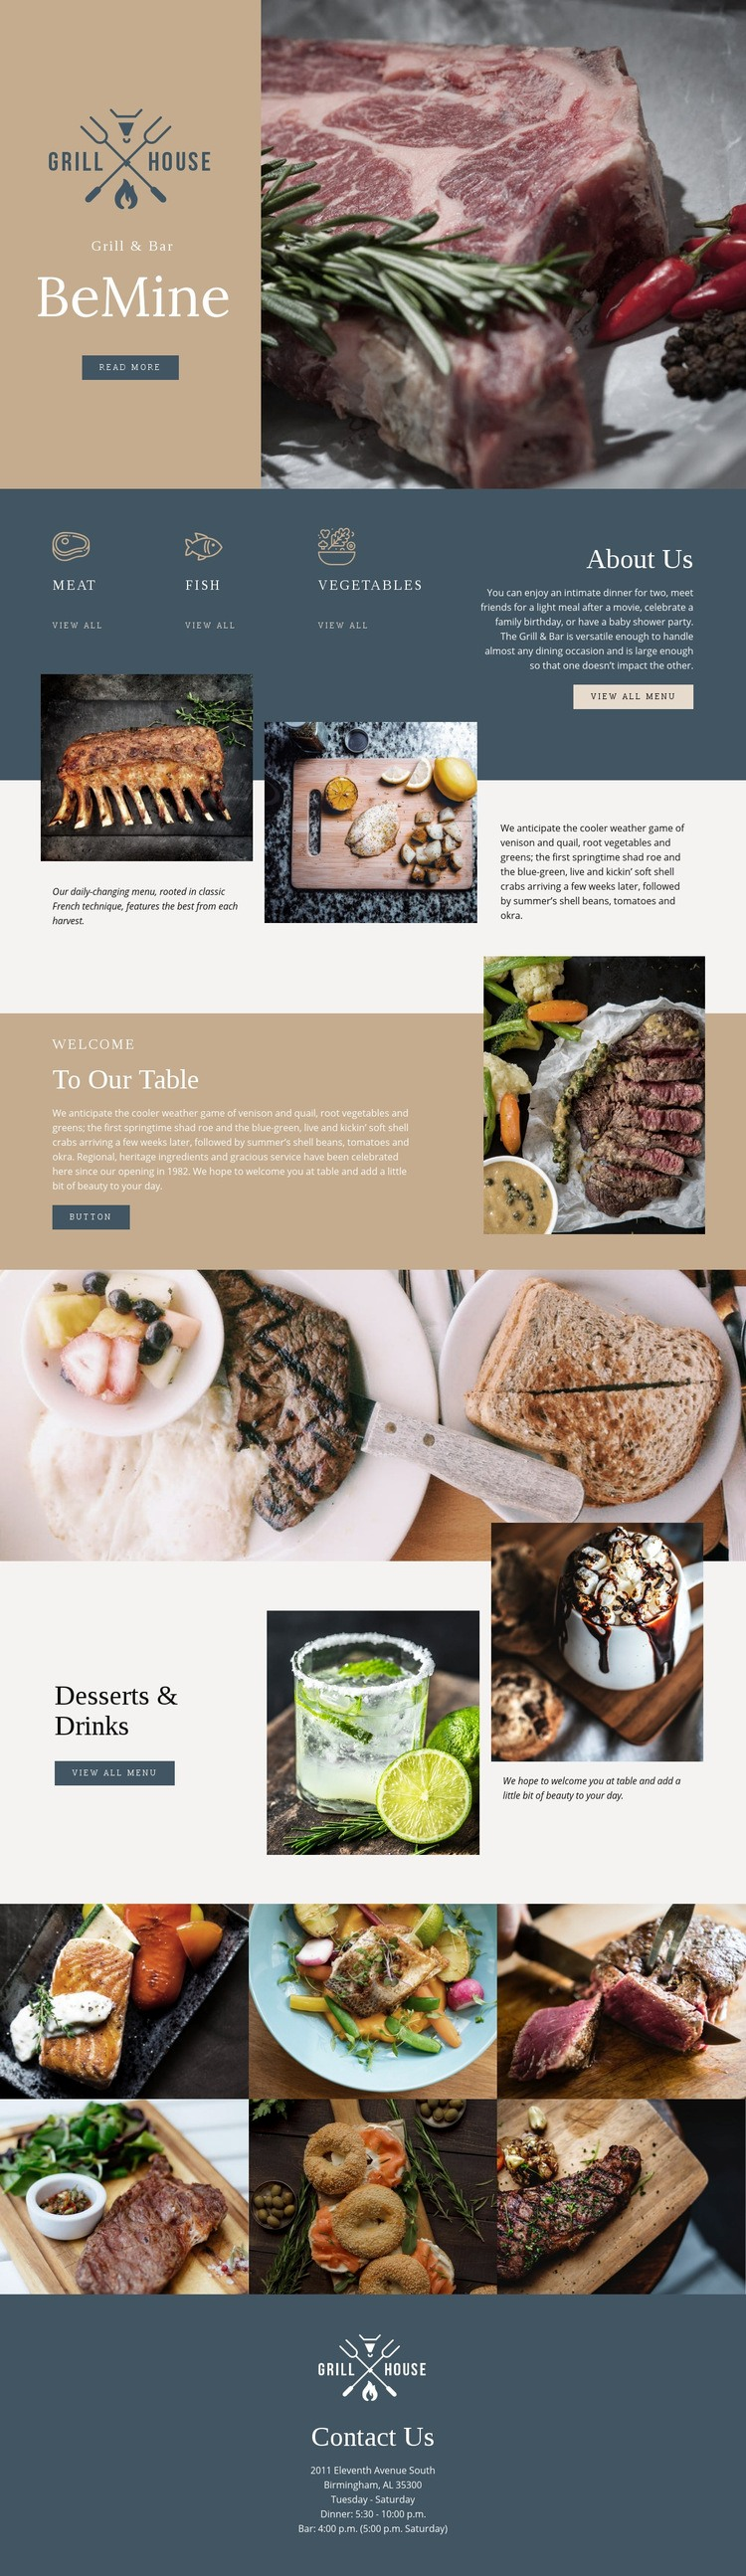 Finest grill house restaurant Html Code Example